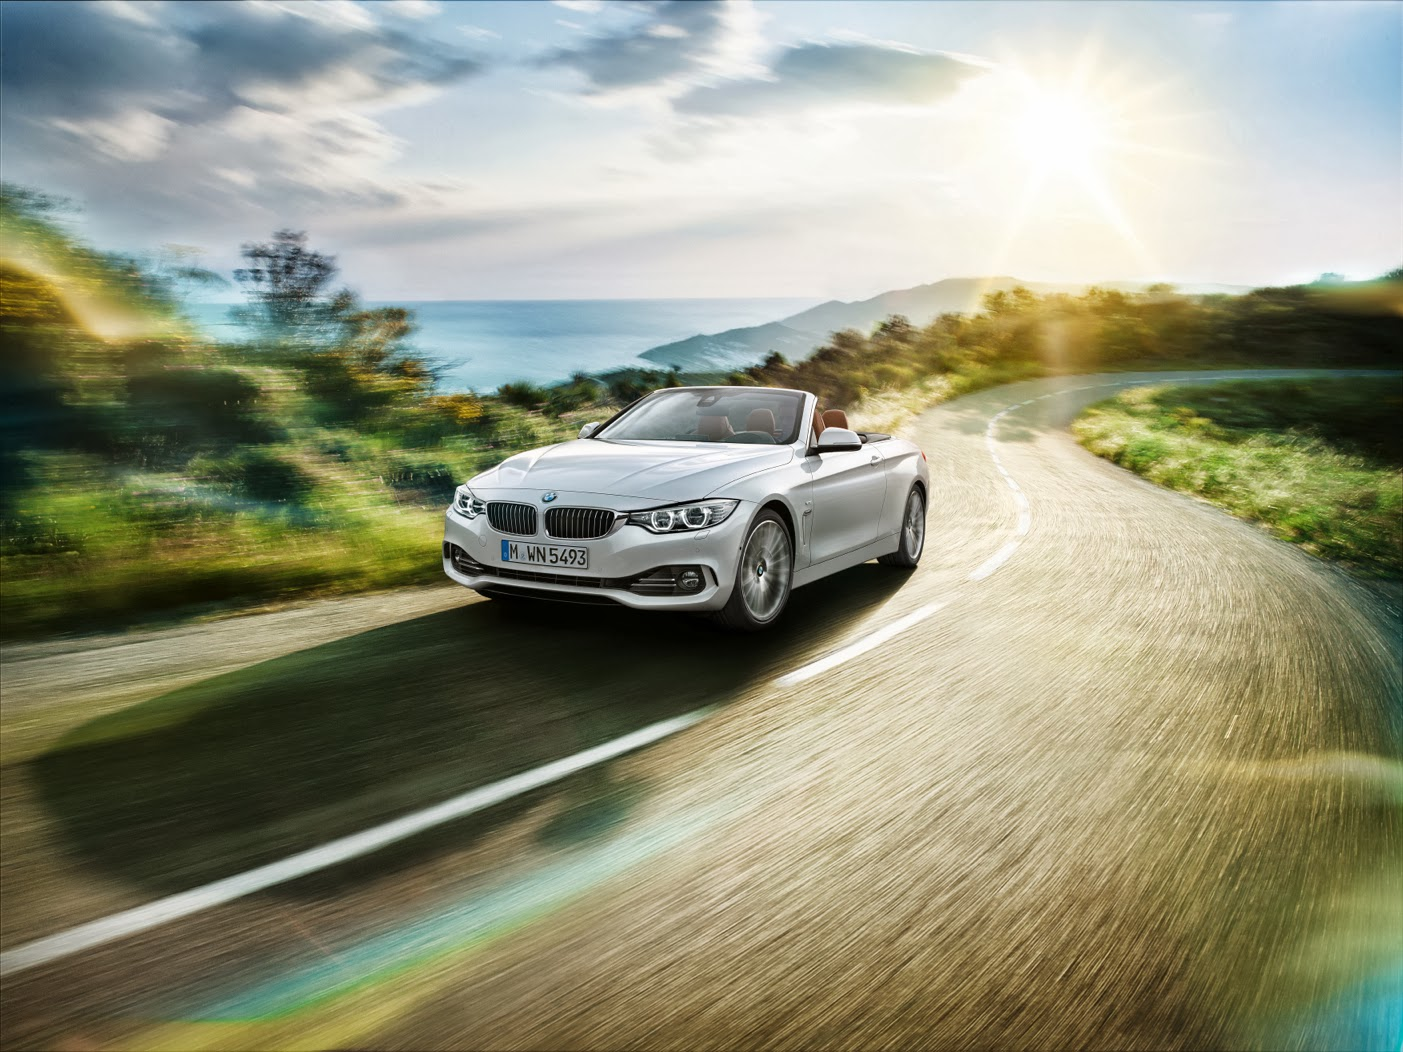 New Bmw 4 Series Convertible Cars Life Cars Fashion Lifestyle Blog